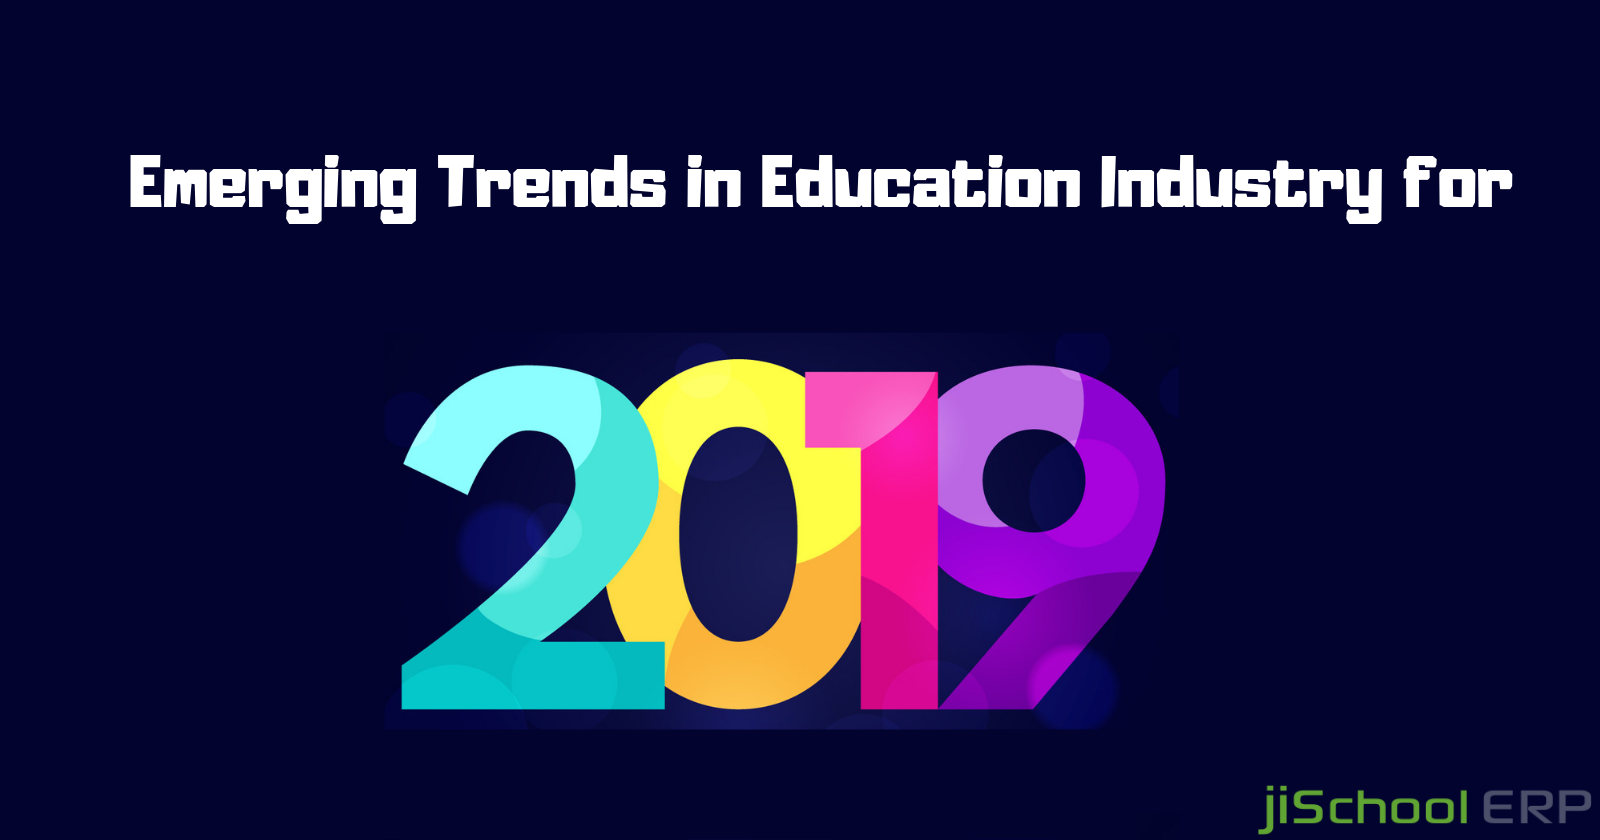 Emerging Trends in Education Industry to Expect in 2019